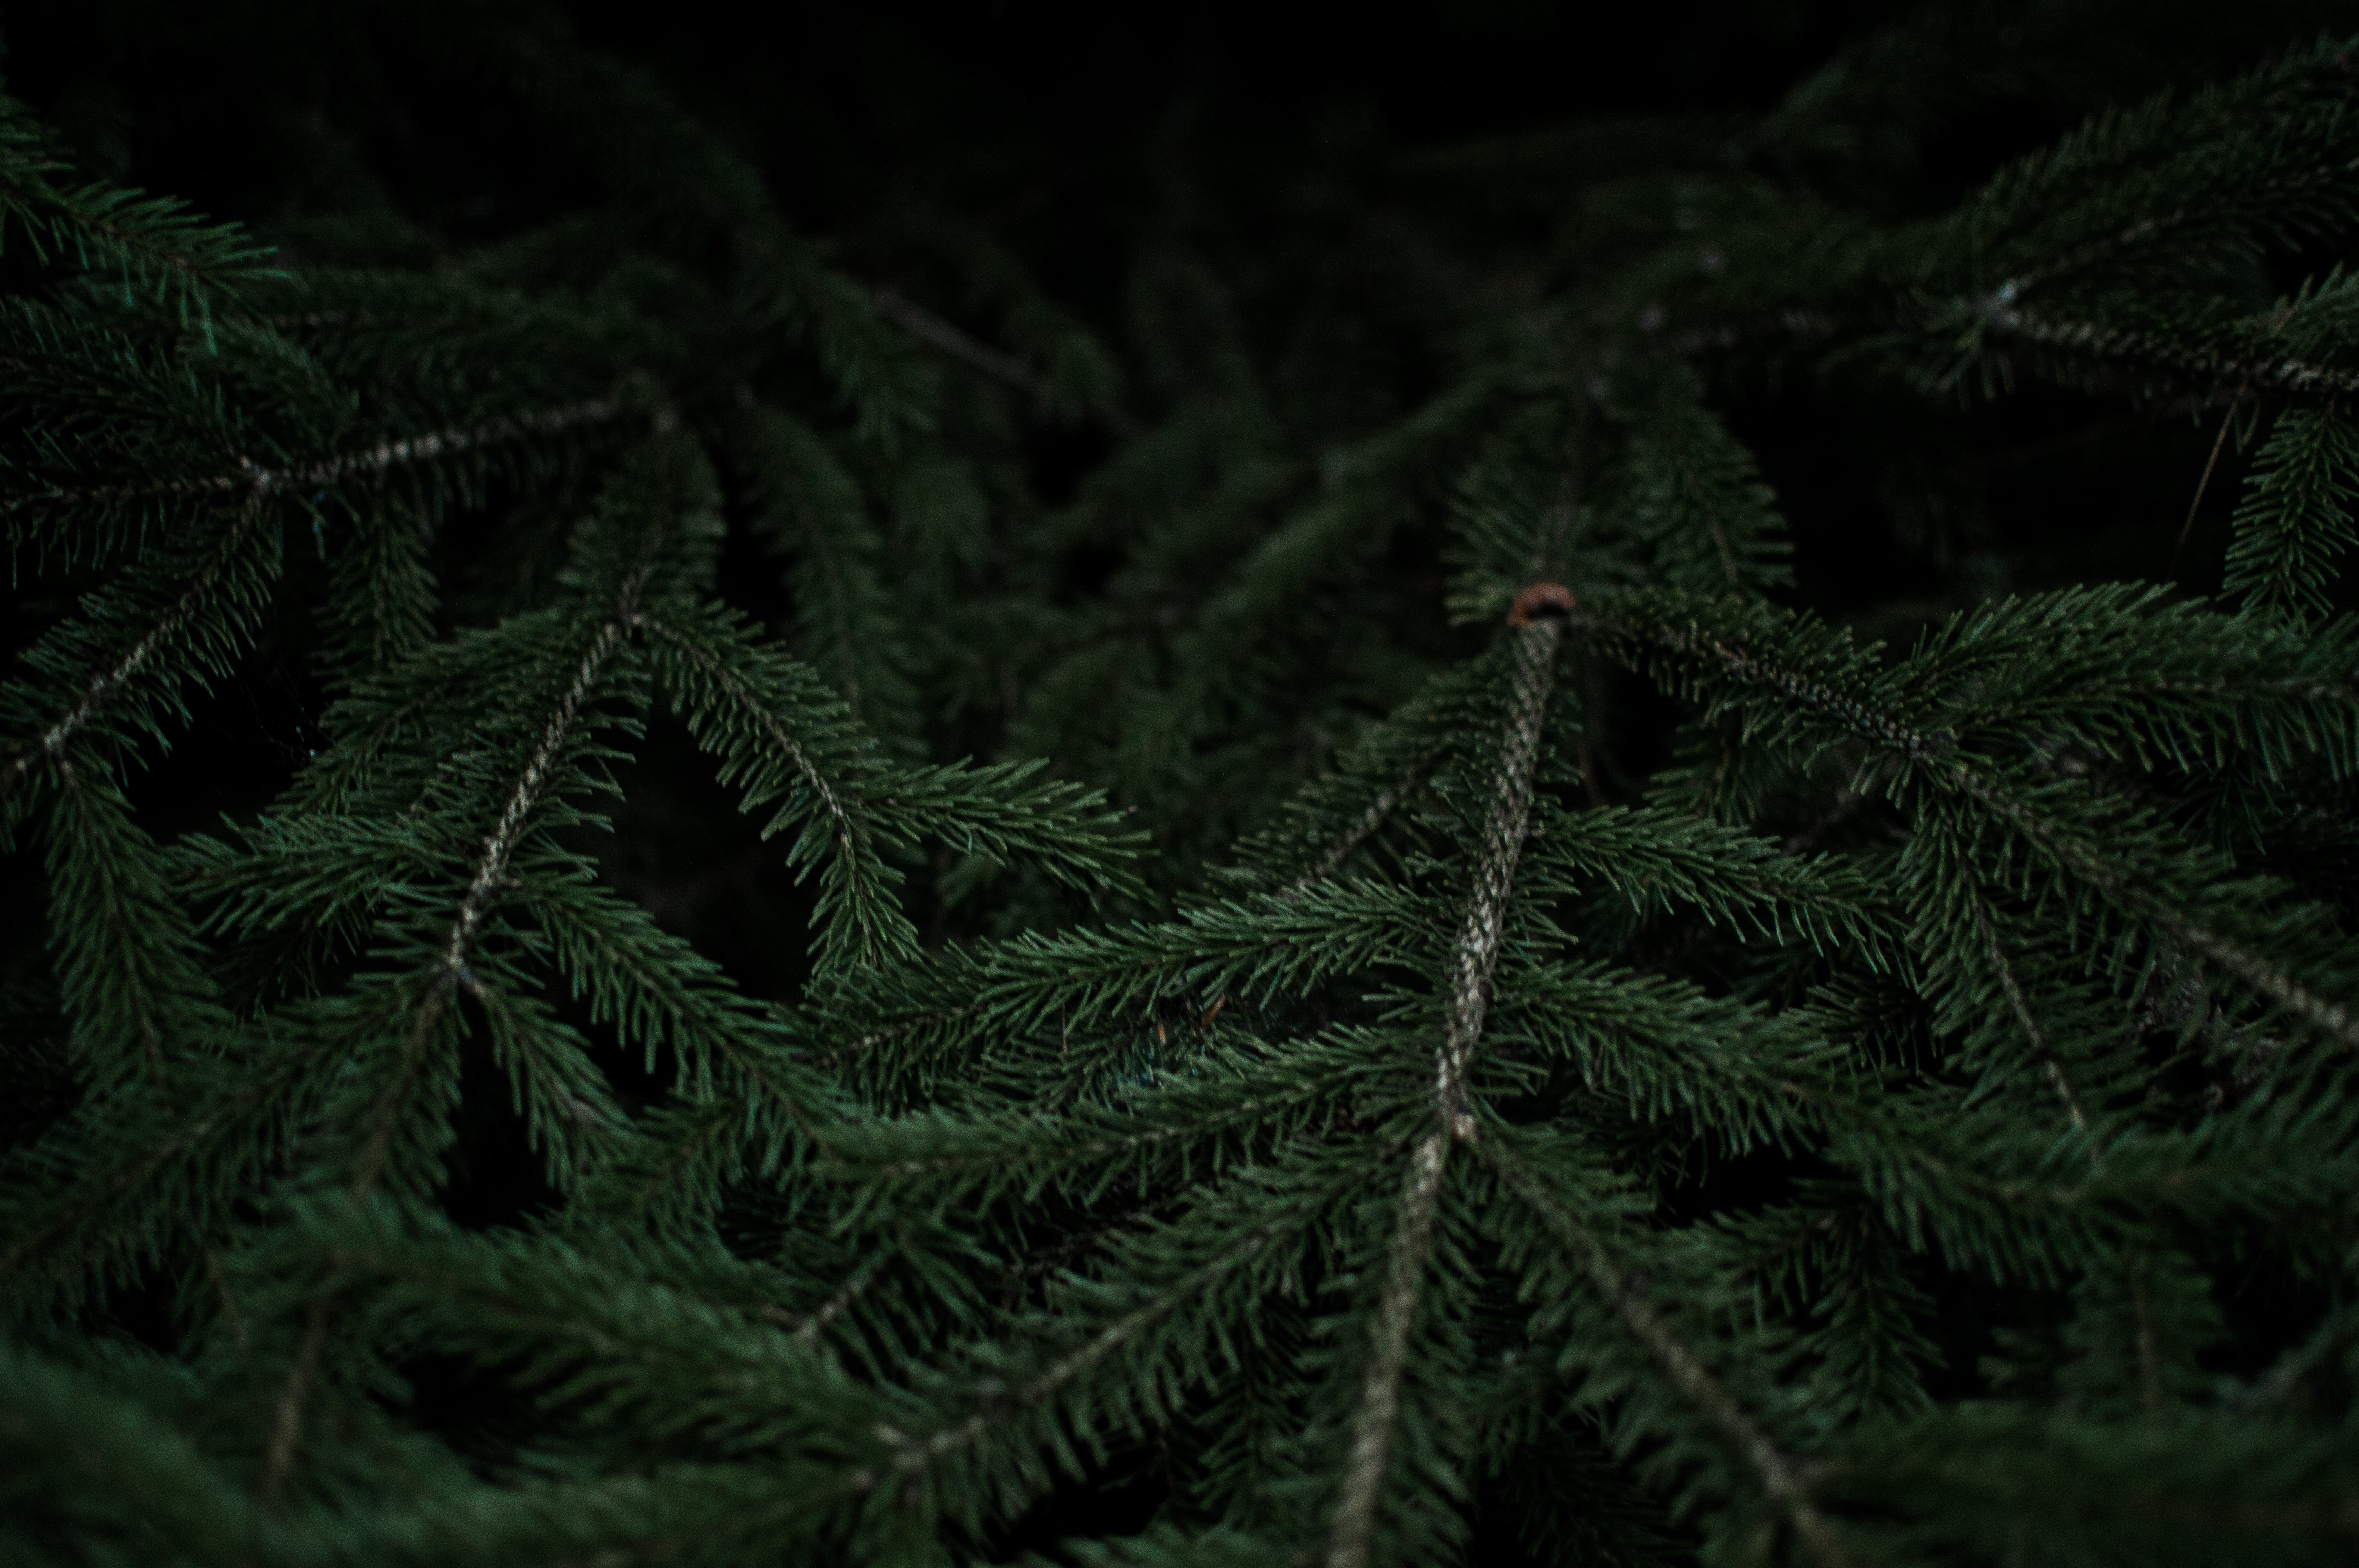 Close-up of dark green fir branches